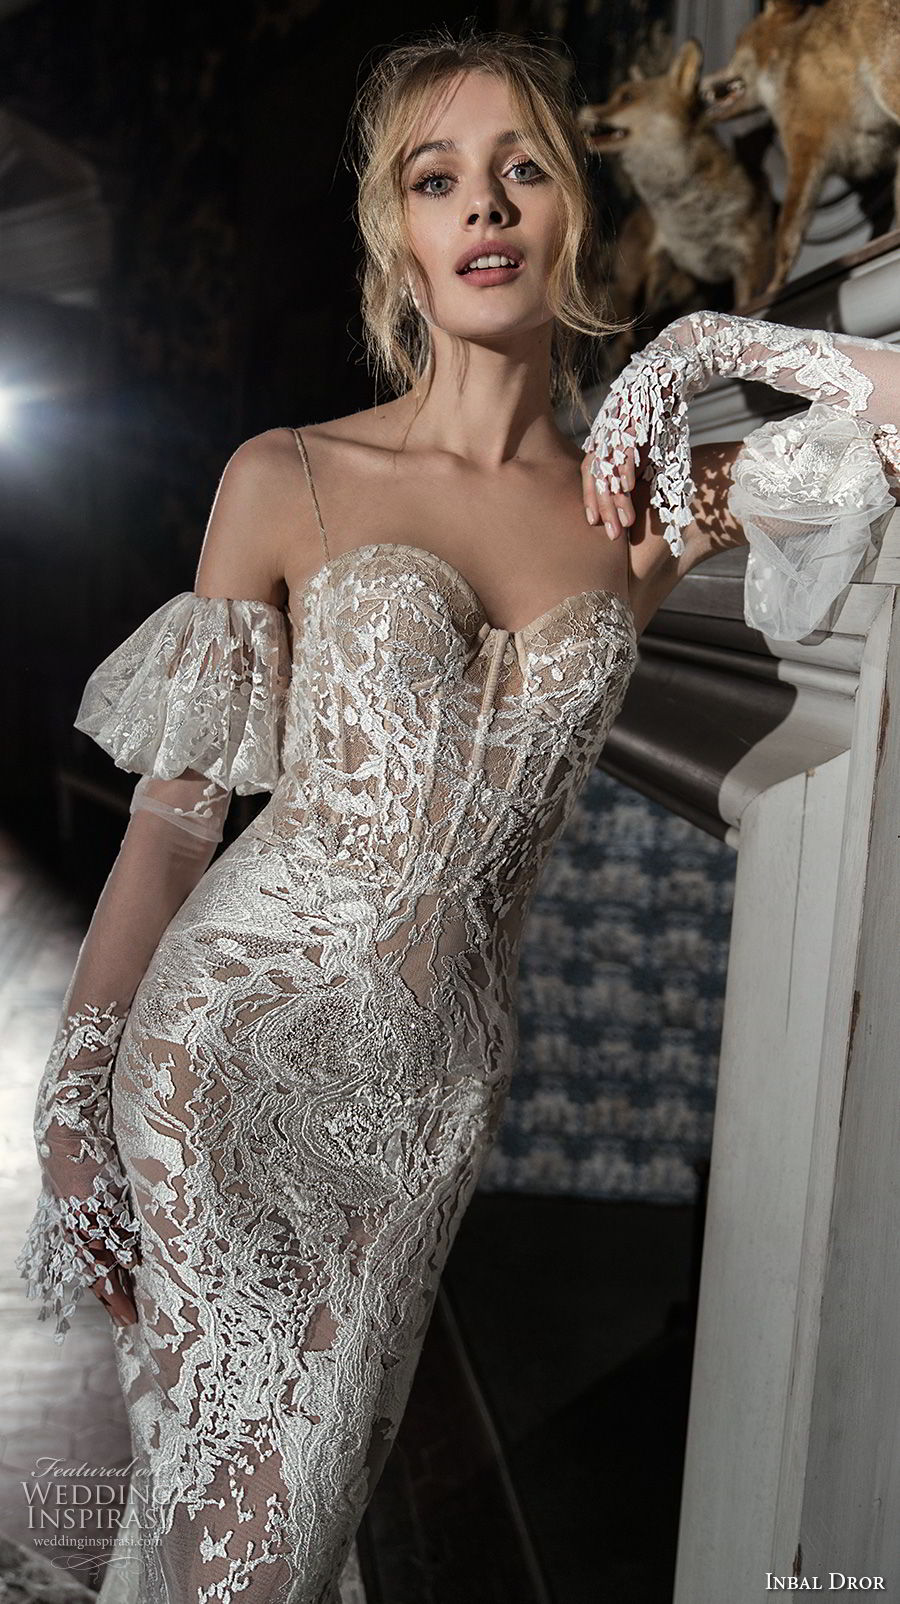 inba dror fall 2018 bridal long sleeves cold shoulder spaghetti strap sweetheart neckline full embellishment glamorous fit and flare wedding dress open back chapel train (7) mv